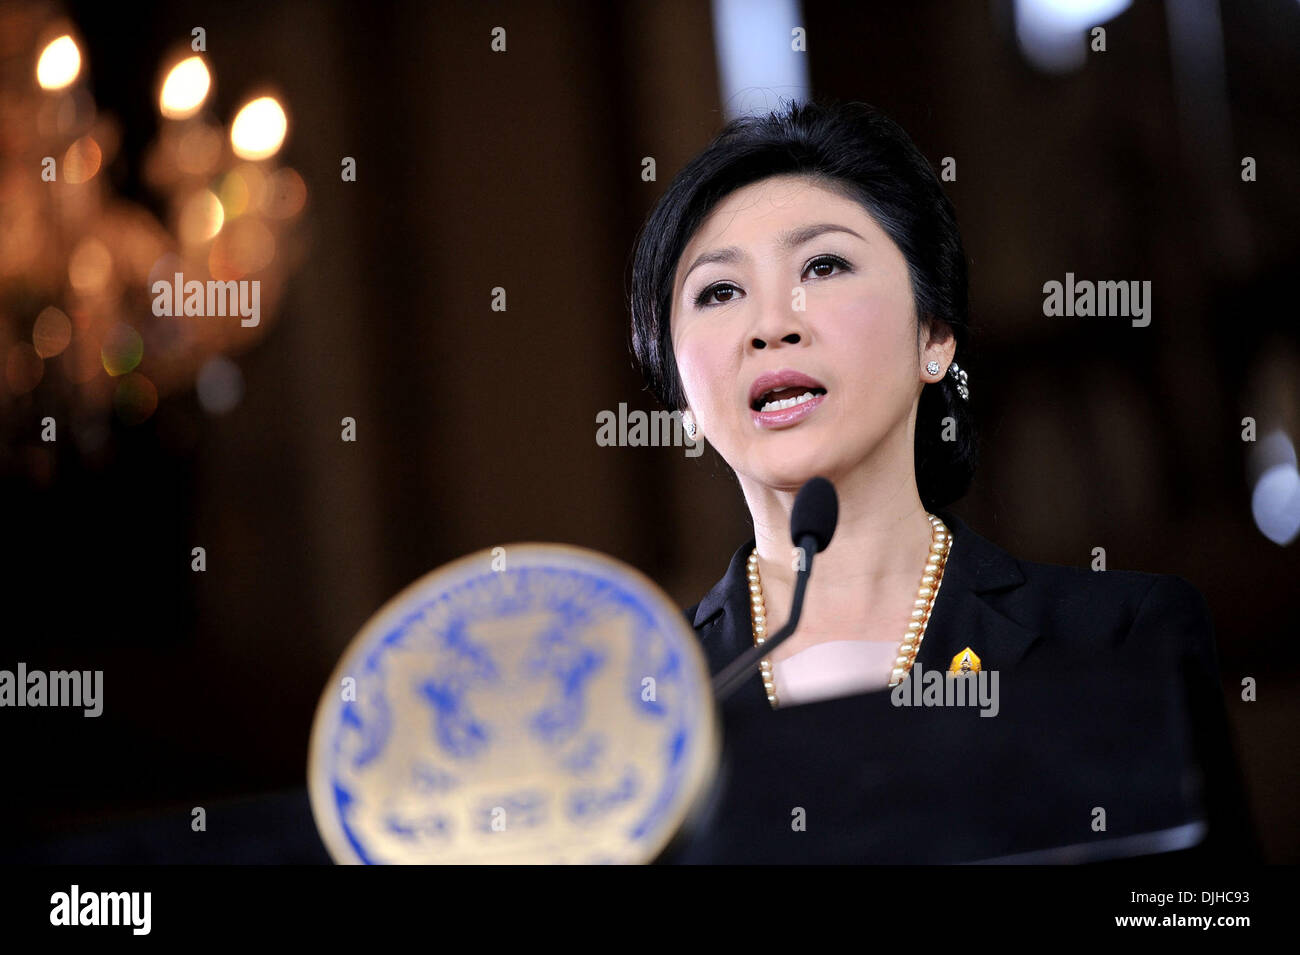 Bangkok, Thailand. 28th Nov, 2013. Thai Prime Minister Yingluck Shinawatra speaks during a press conference at the Government House in Bangkok, Thailand, Nov. 28, 2013. Thai Prime Minister Yingluck Shinawatra on Thursday called on anti-government demonstrators to hold dialogue with the government to find a way out of the political tumult. Credit:  Rachen Sageamsak/Xinhua/Alamy Live News - Stock Image